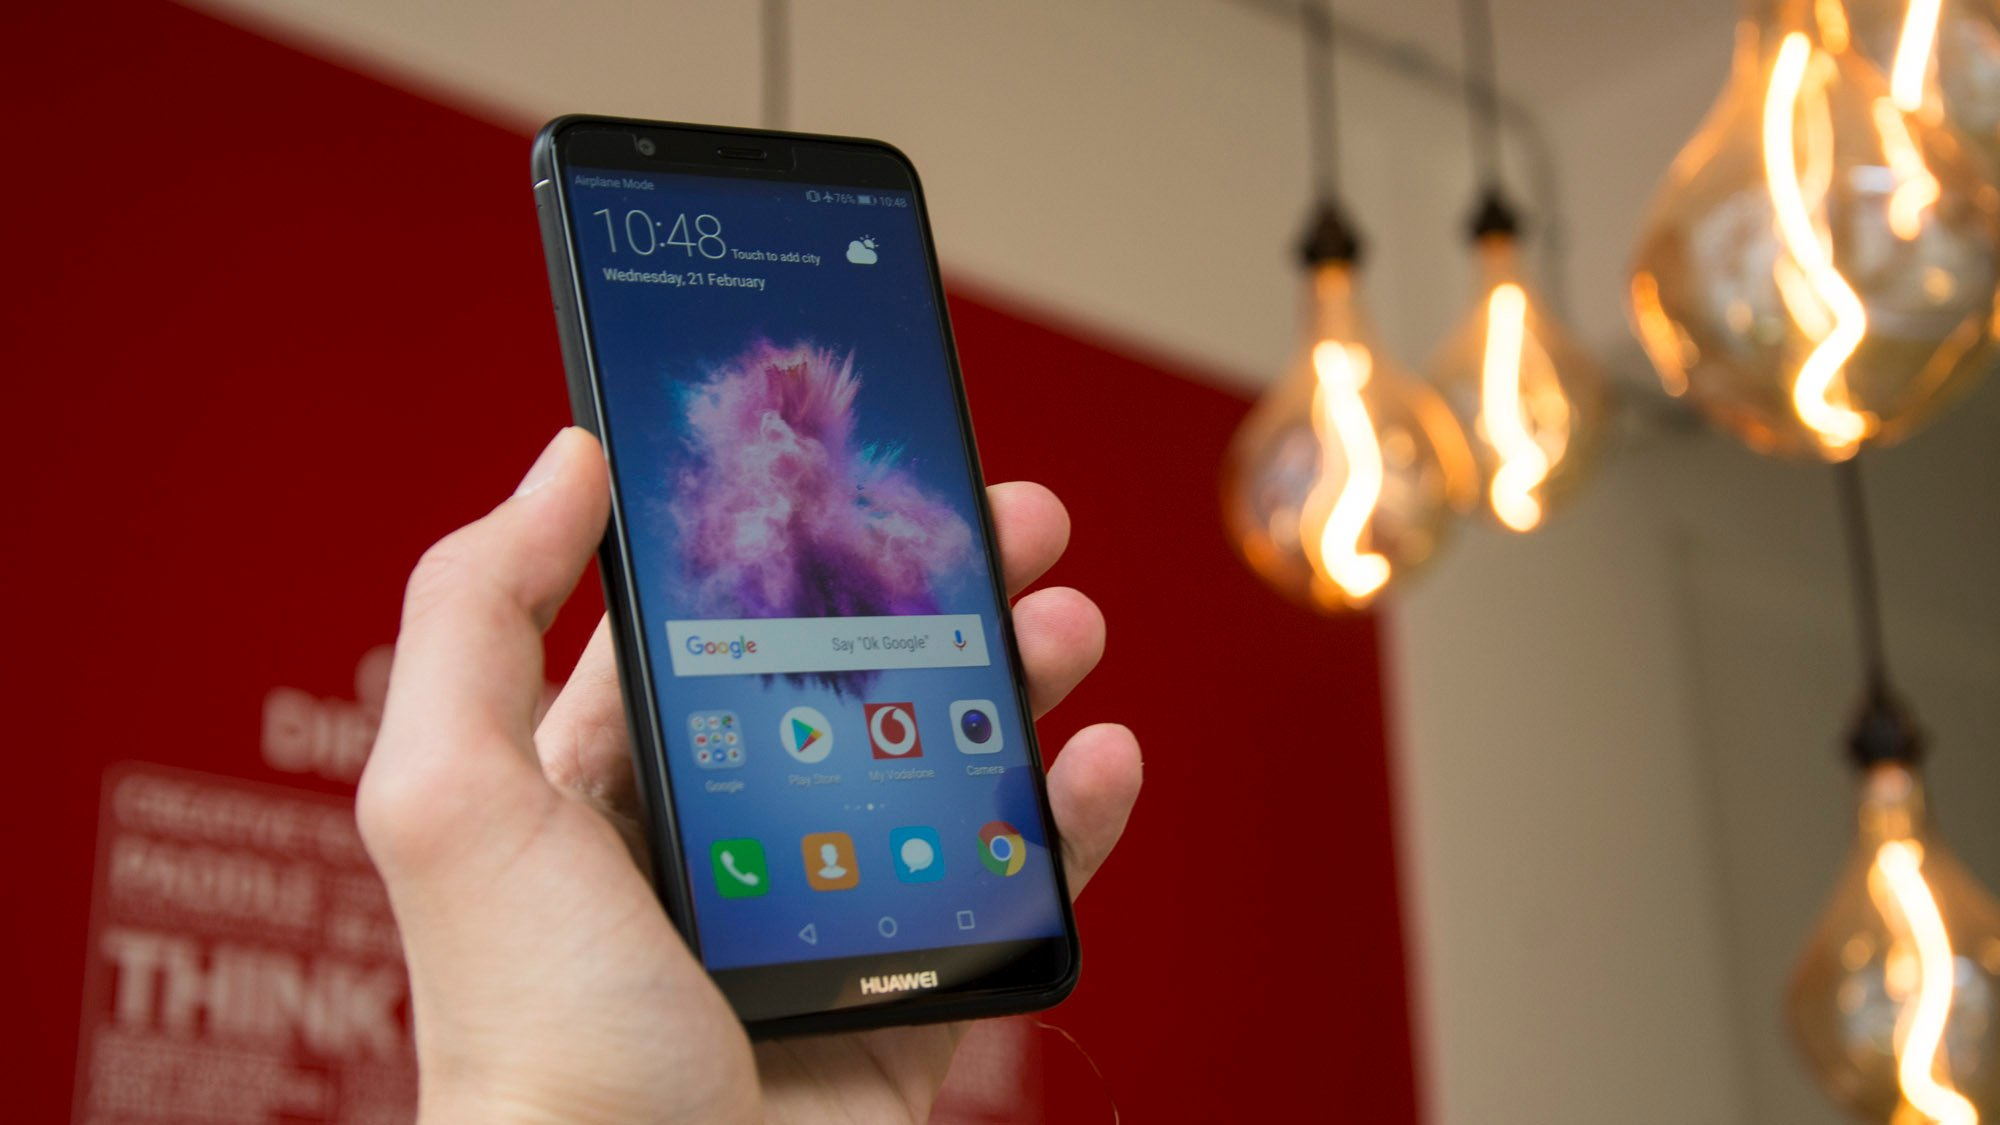 Huawei P Smart (2017) review: Price cuts makes the P Smart a tasty